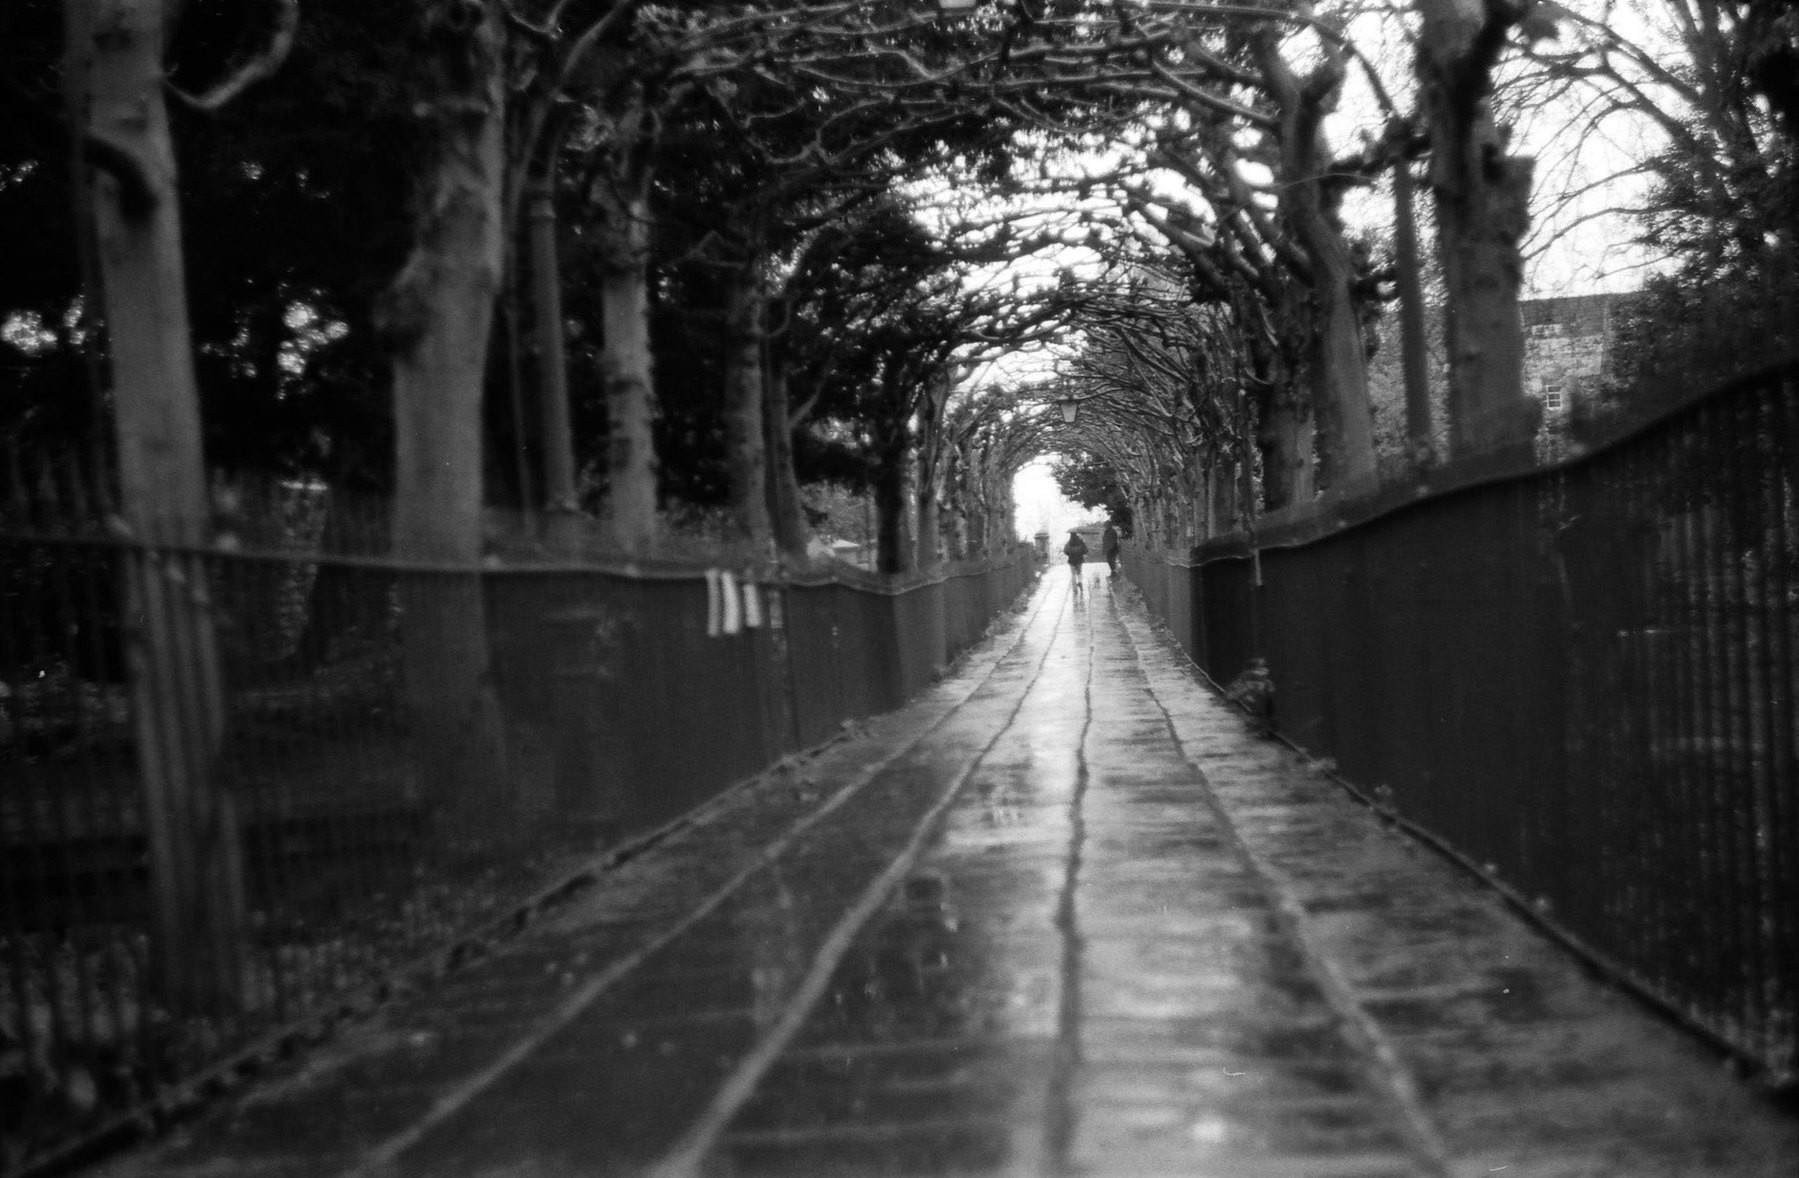 A pavement runs through a tunnel of thorny trees.